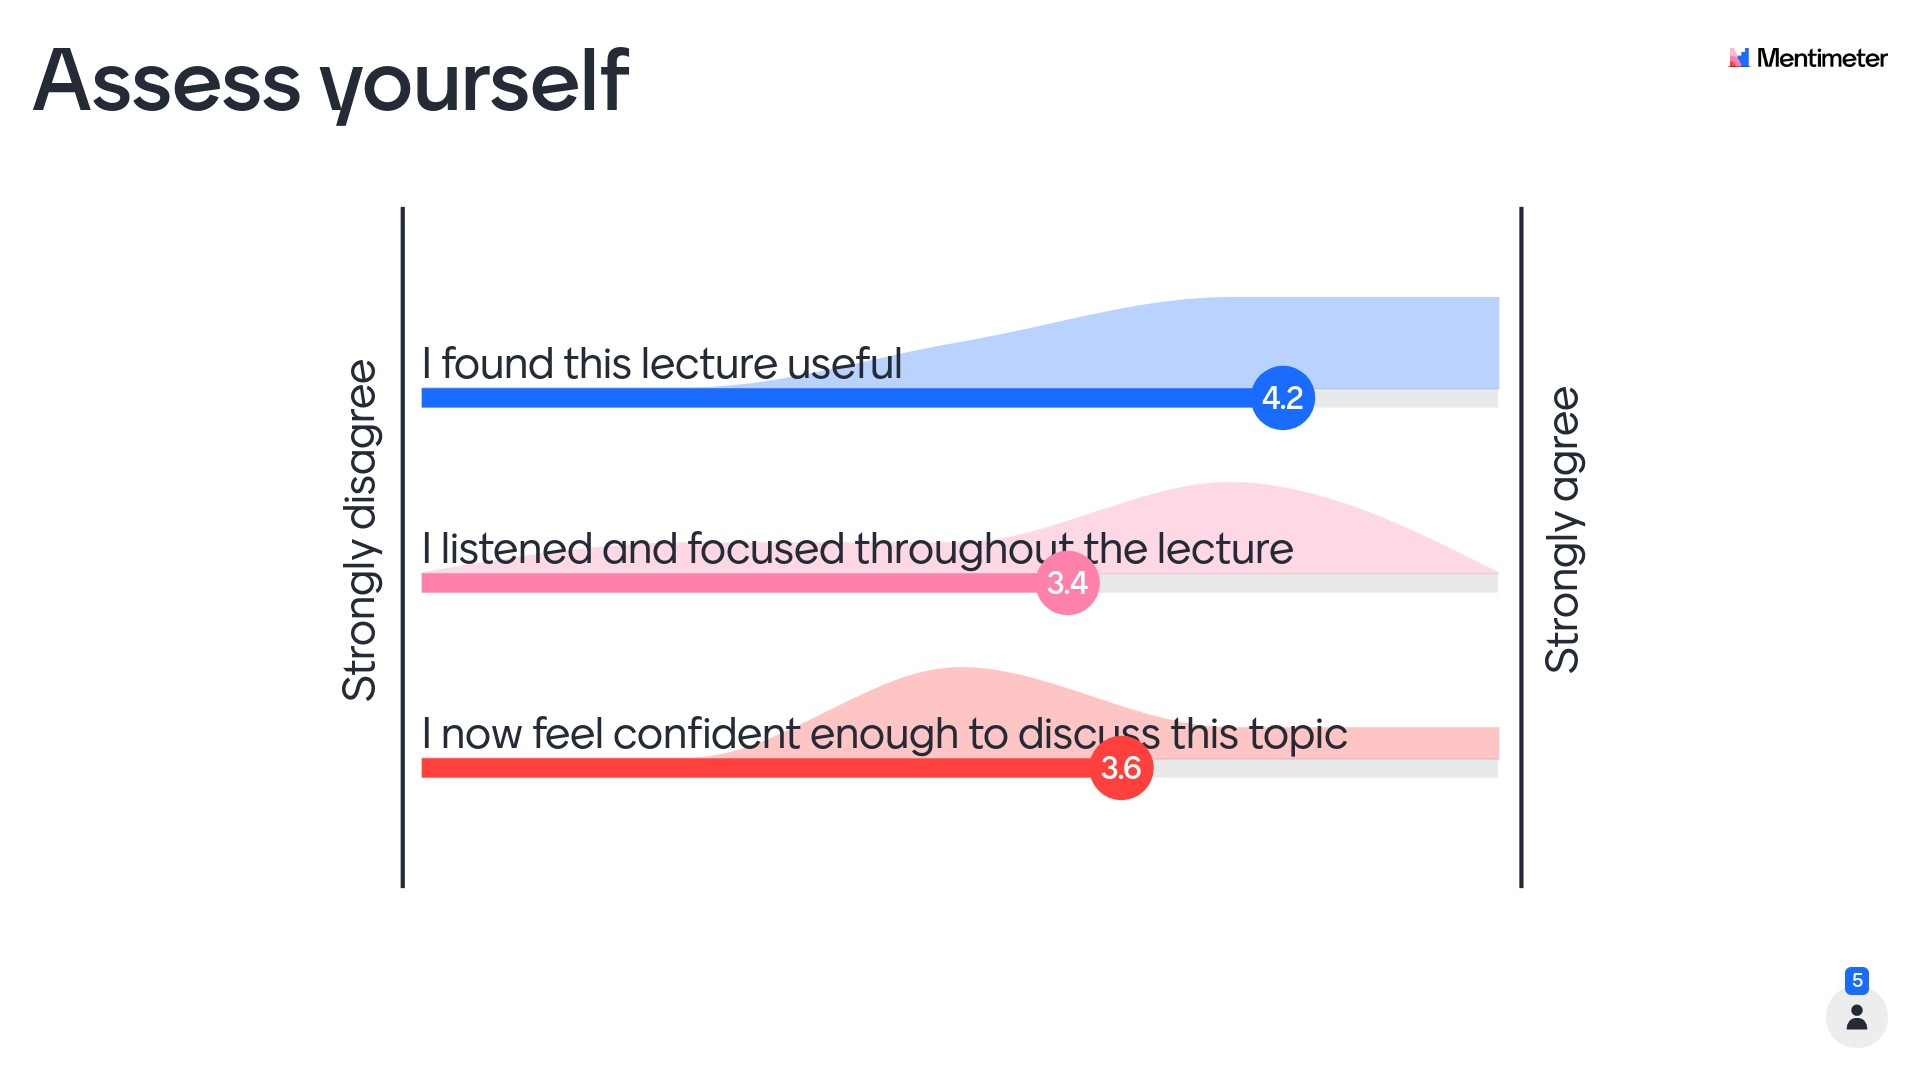 Lecture engagement self-assessment